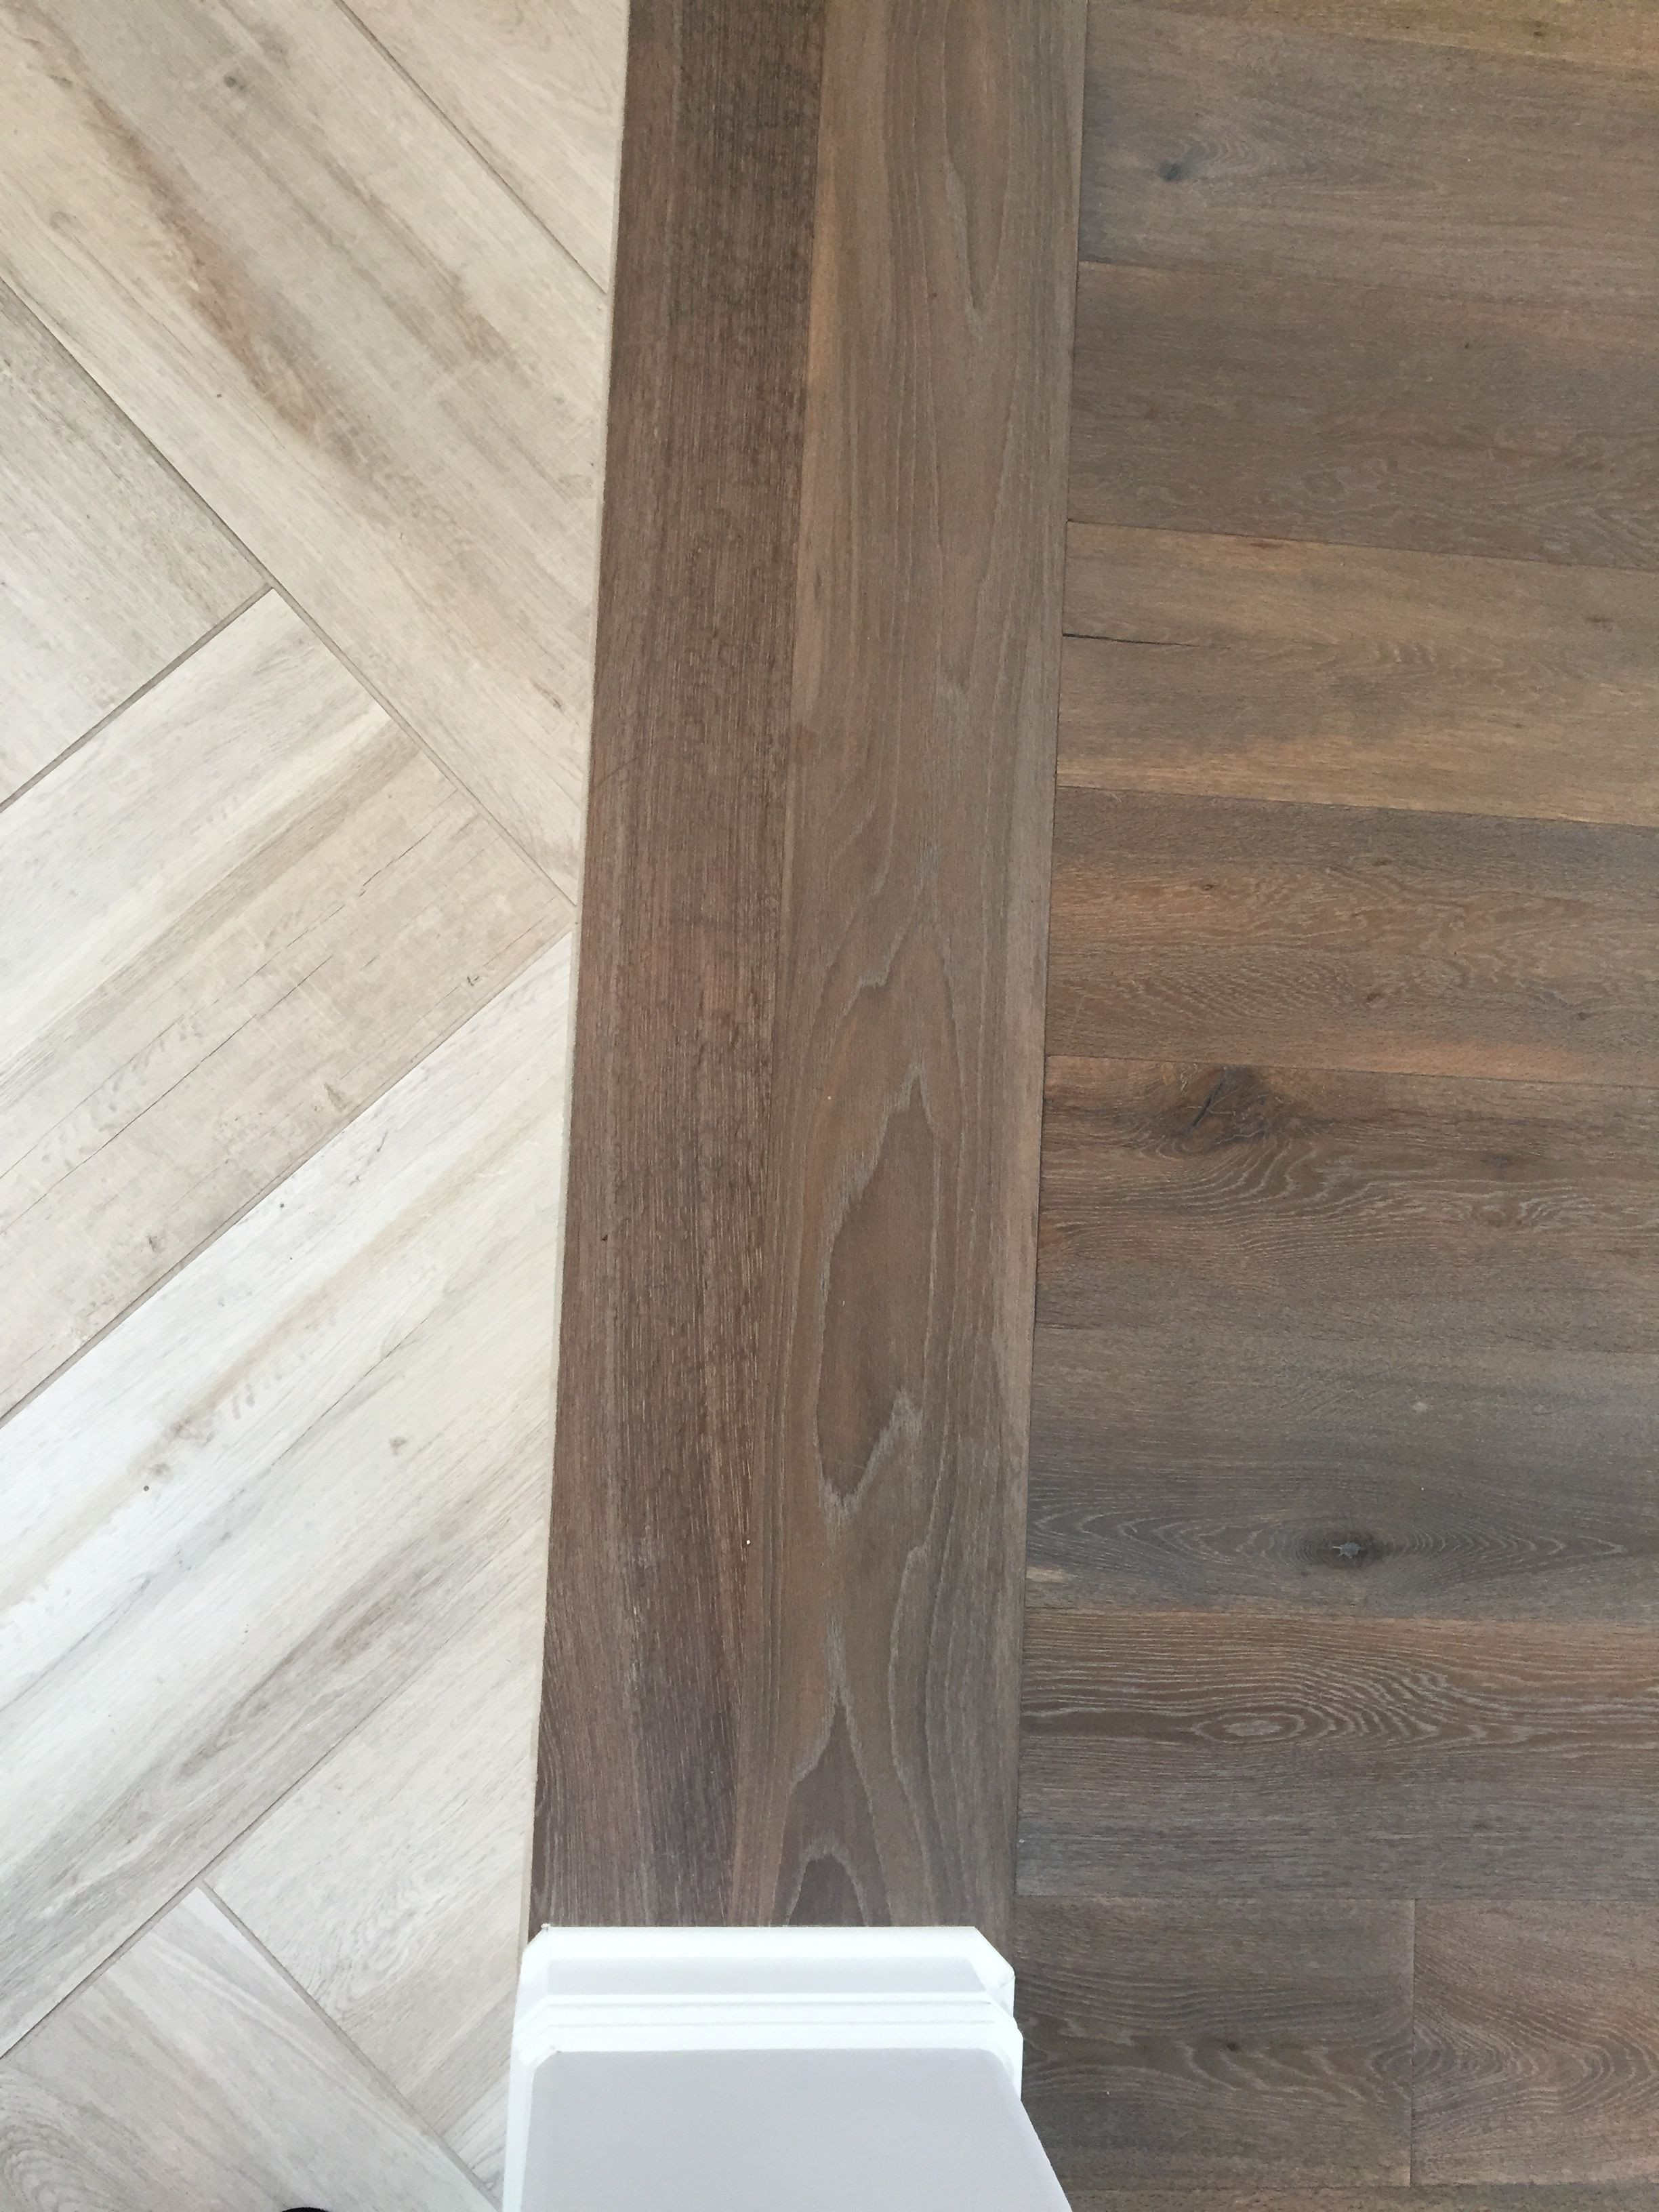 How Much Do New Hardwood Floors Cost Of Floor Transition Laminate to Herringbone Tile Pattern Model Inside Floor Transition Laminate to Herringbone Tile Pattern Herringbone Tile Pattern Herringbone Wood Floor